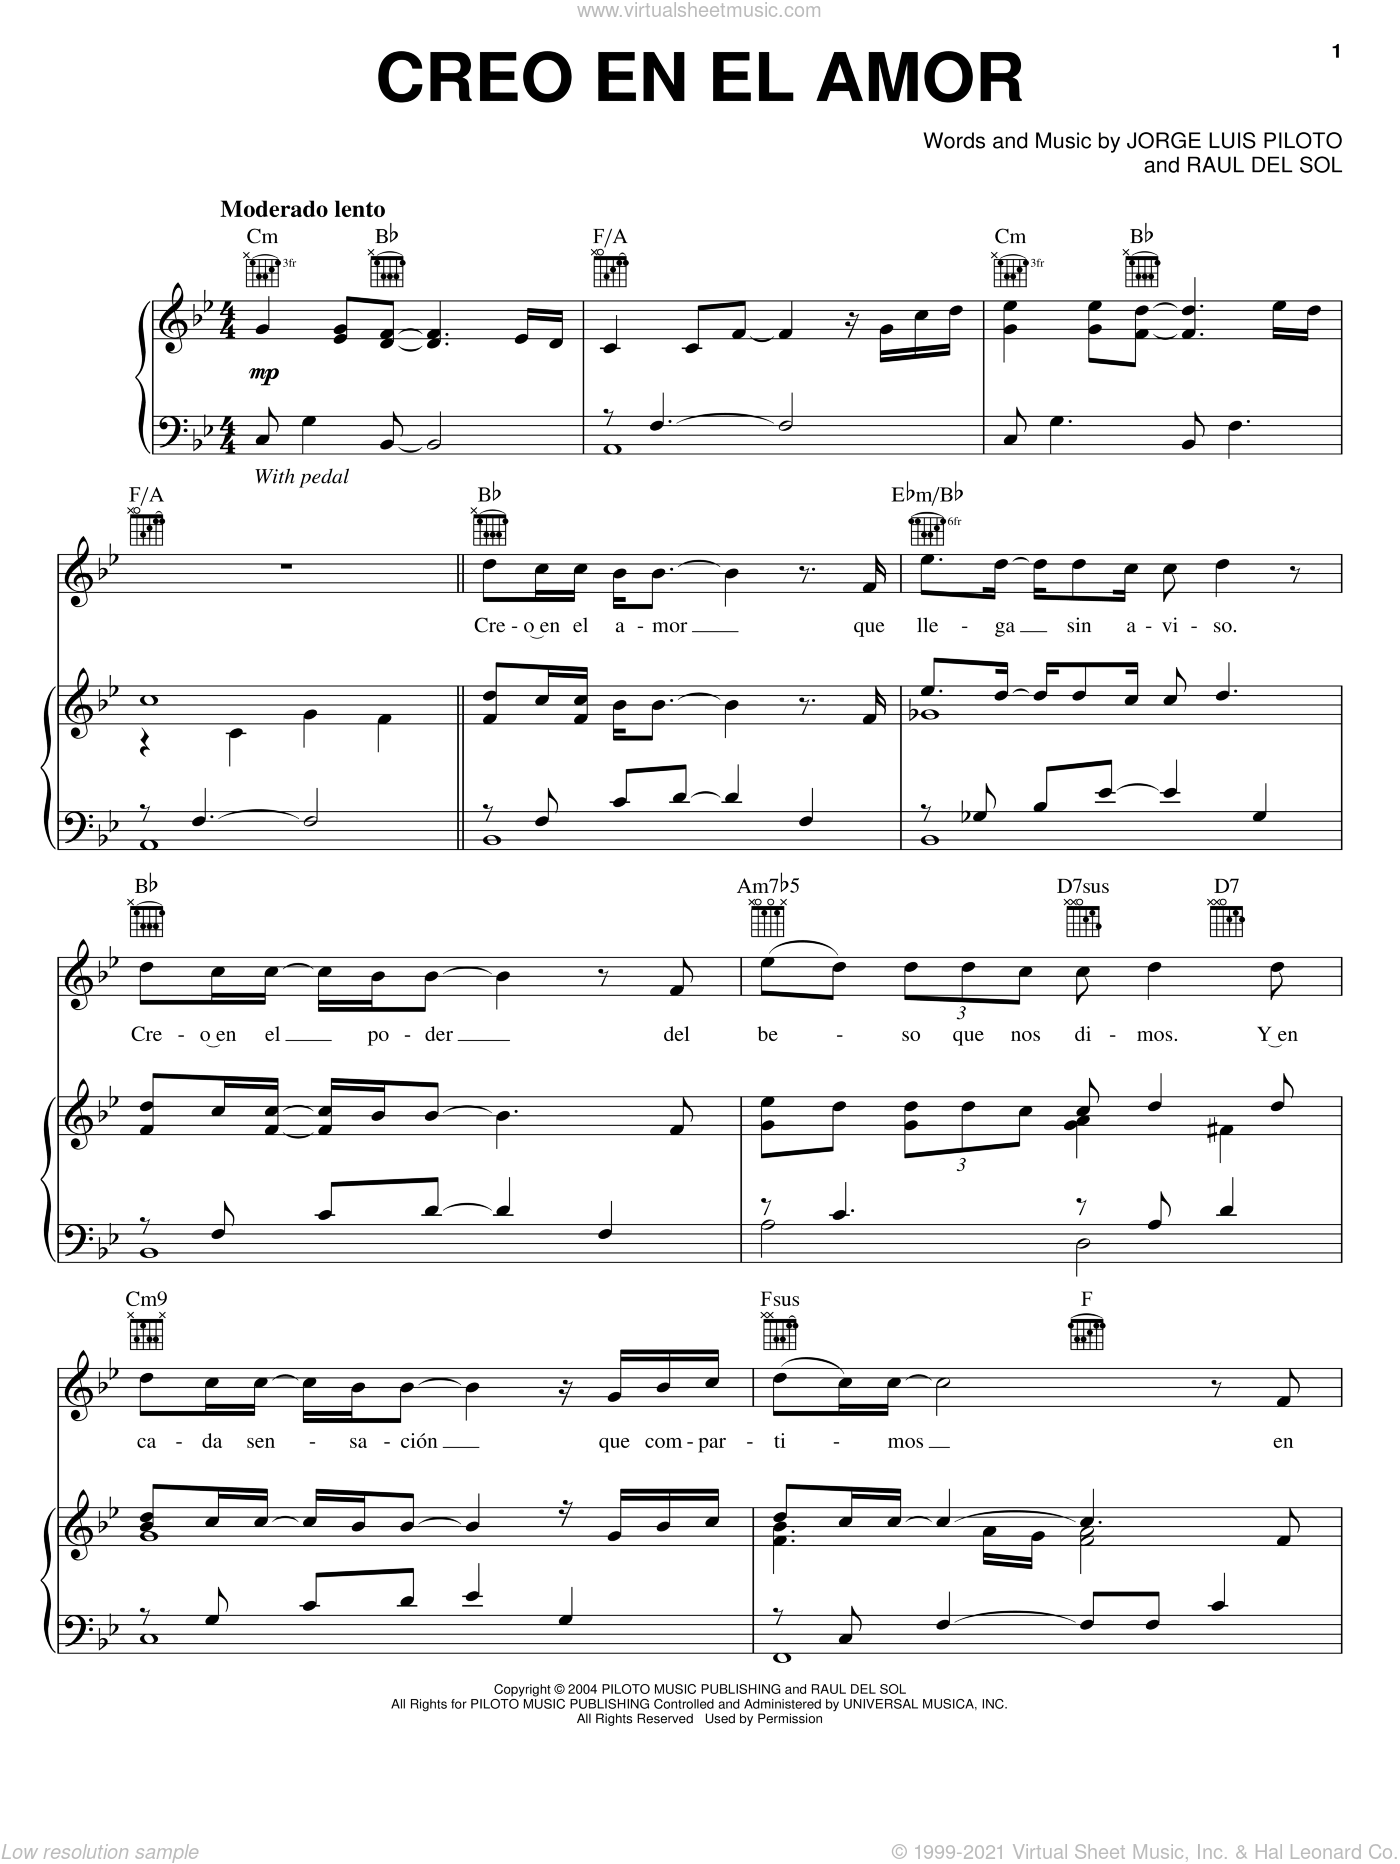 Creo En El Amor sheet music for voice, piano or guitar by Raul del Sol and Jorge Luis Piloto. Score Image Preview.